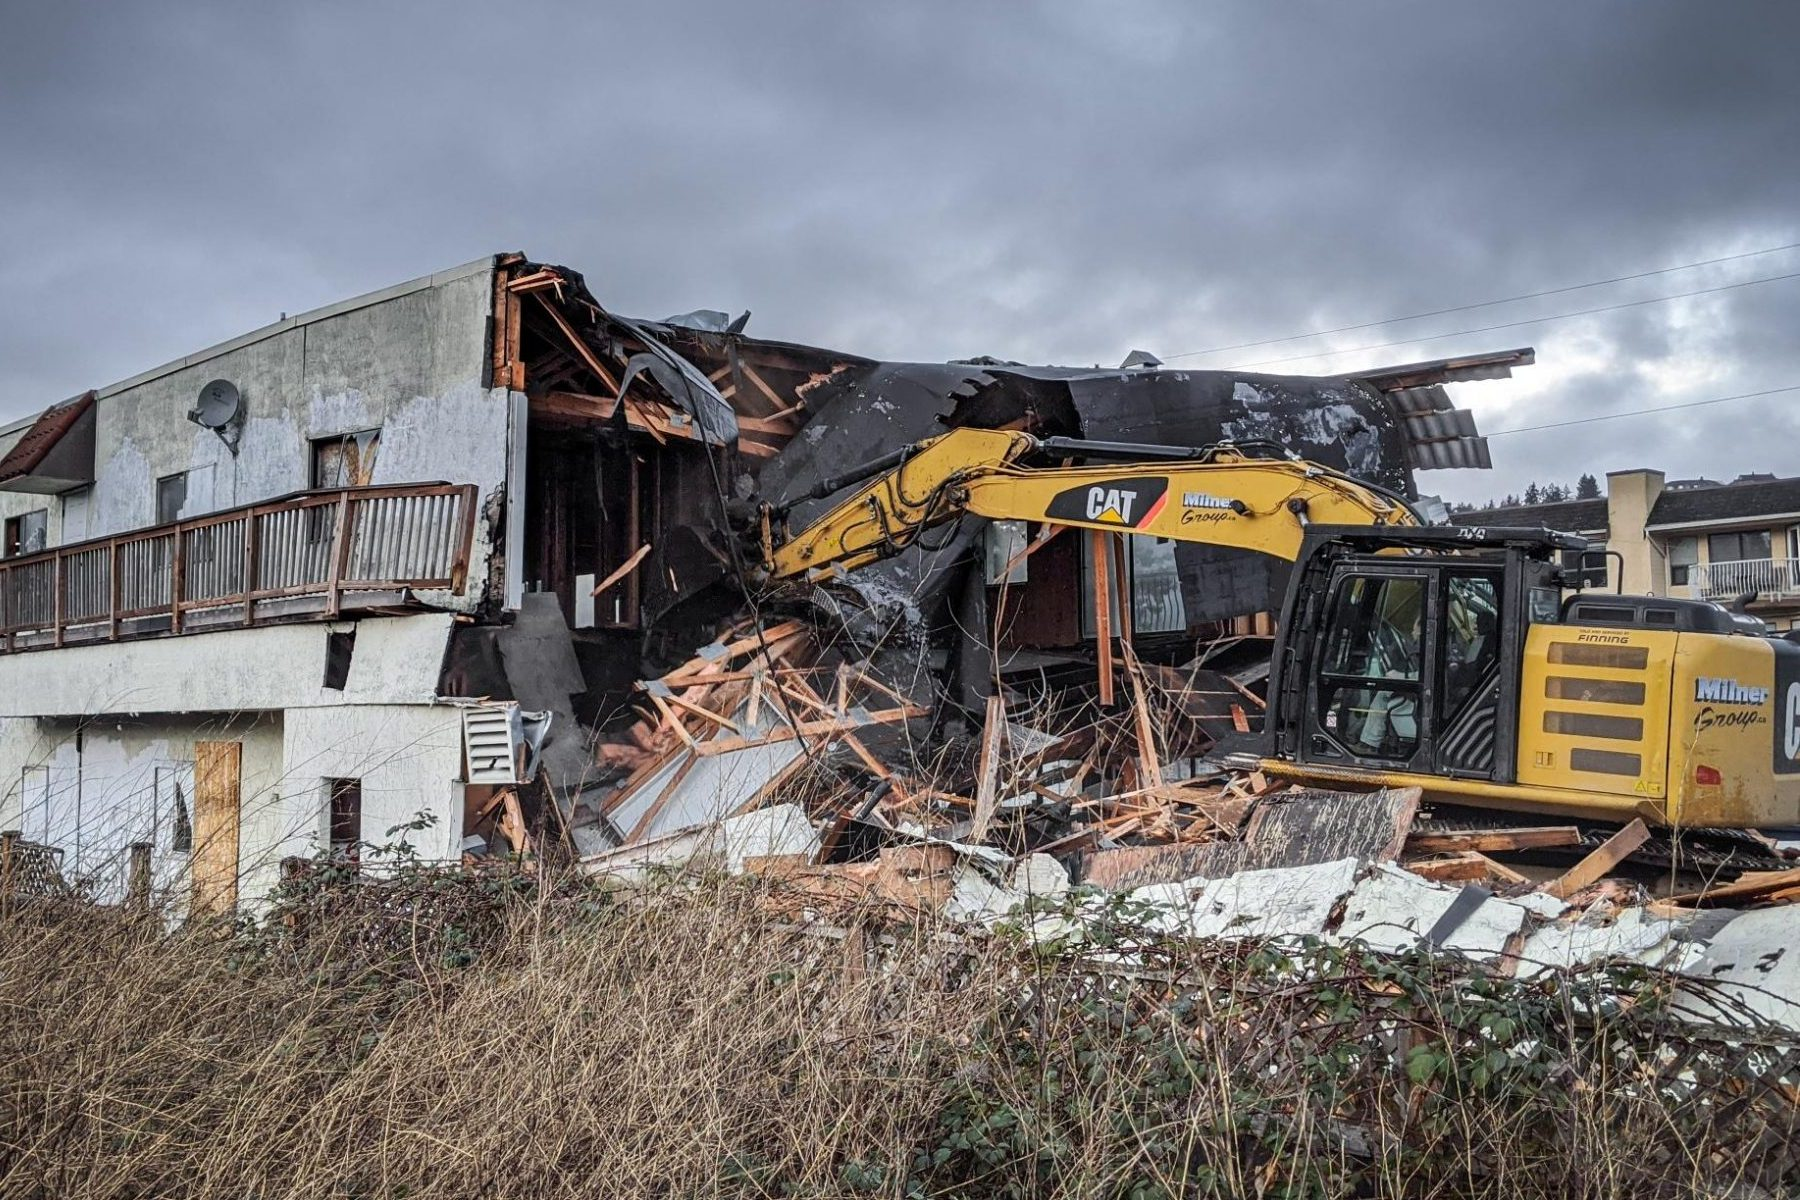 Amrikko's being demolished